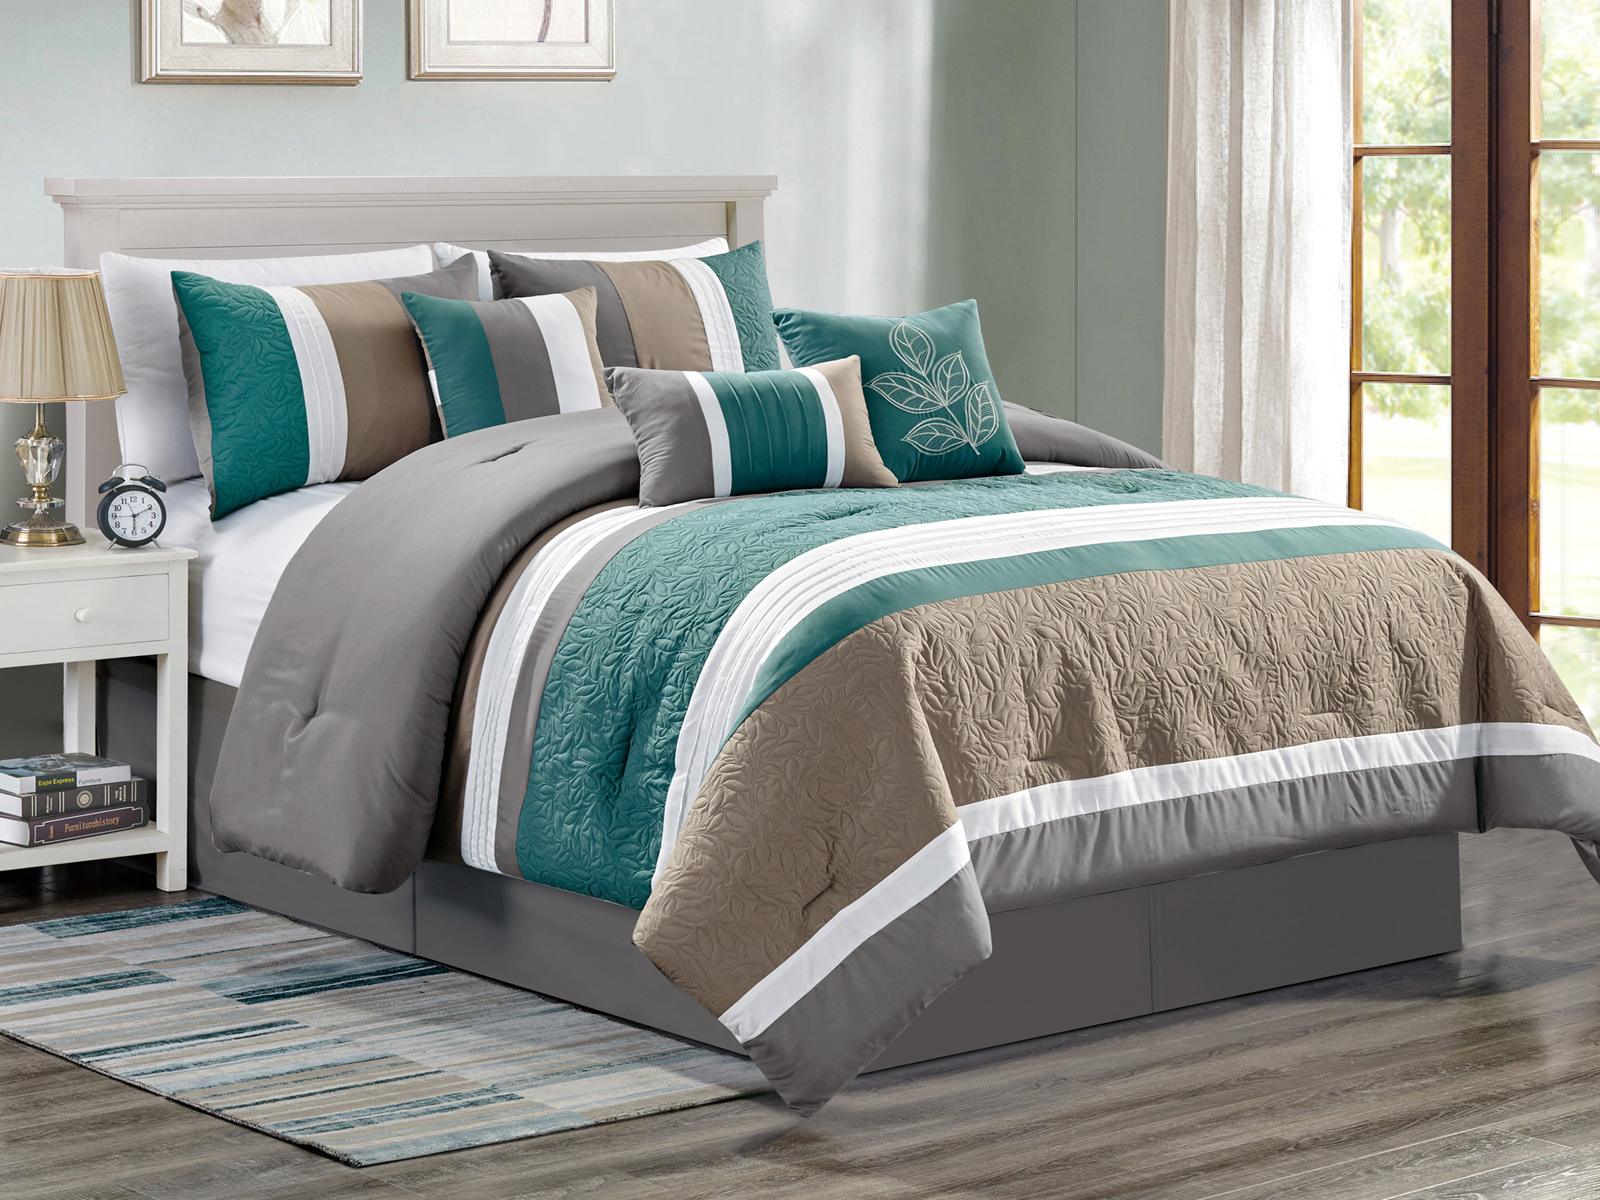 7 Pc Penny Floral Leaves Embossed Pleated Stripe Comforter Set Teal Green Beige Gray White Queen Walmart Com Walmart Com